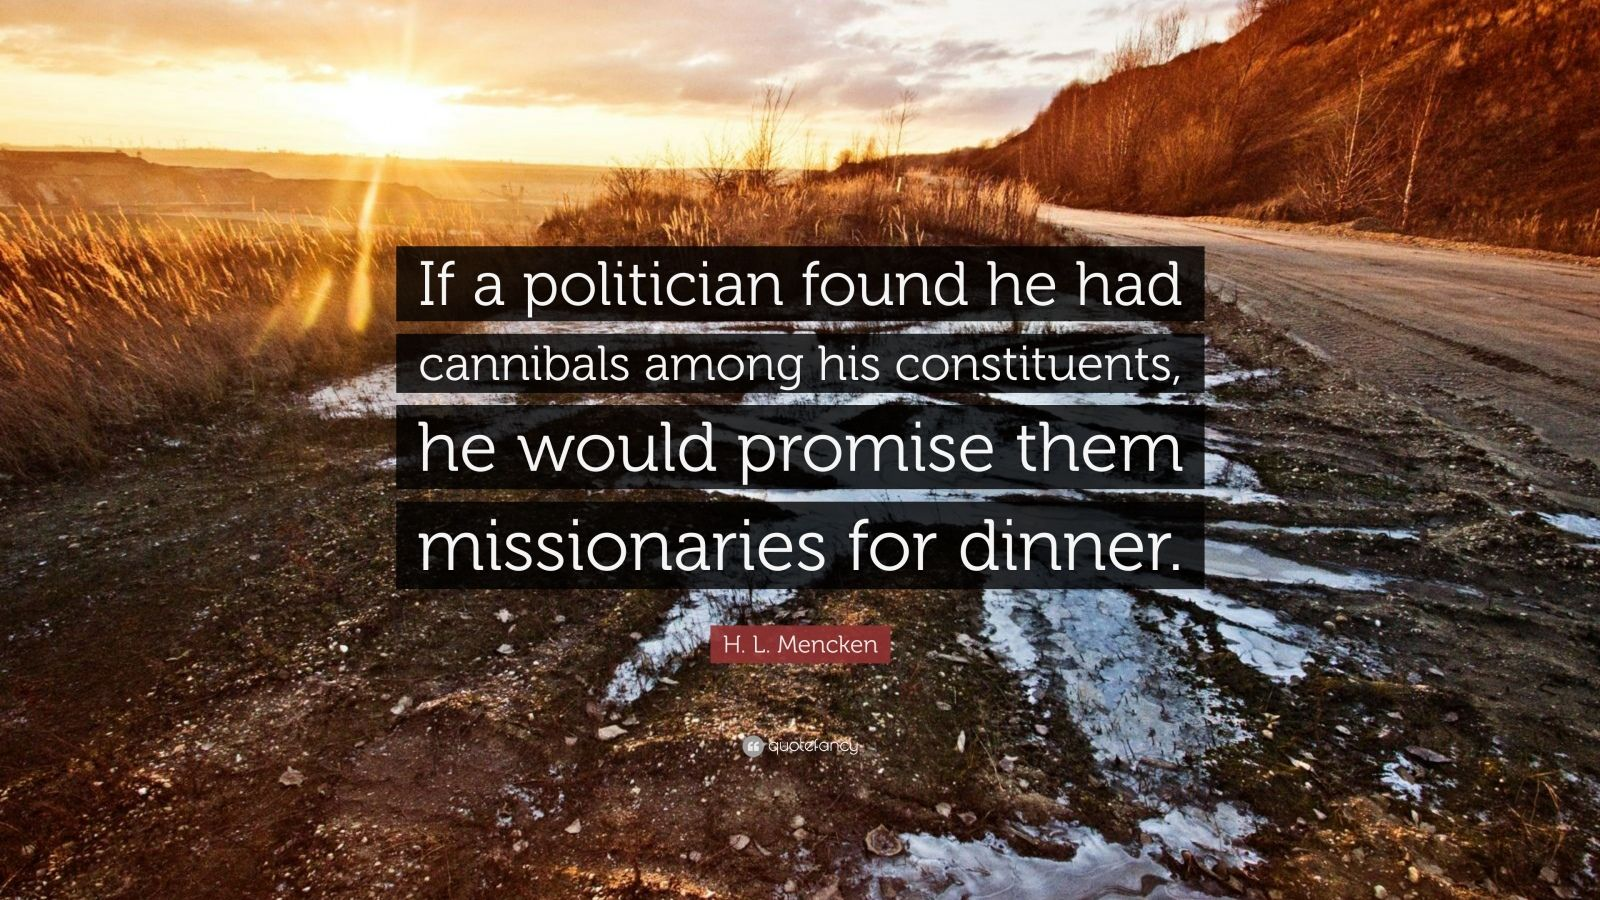 "H. L. Mencken Quote: ""If a politician found he had cannibals among his constituents, he would promise them missionaries for dinner."""